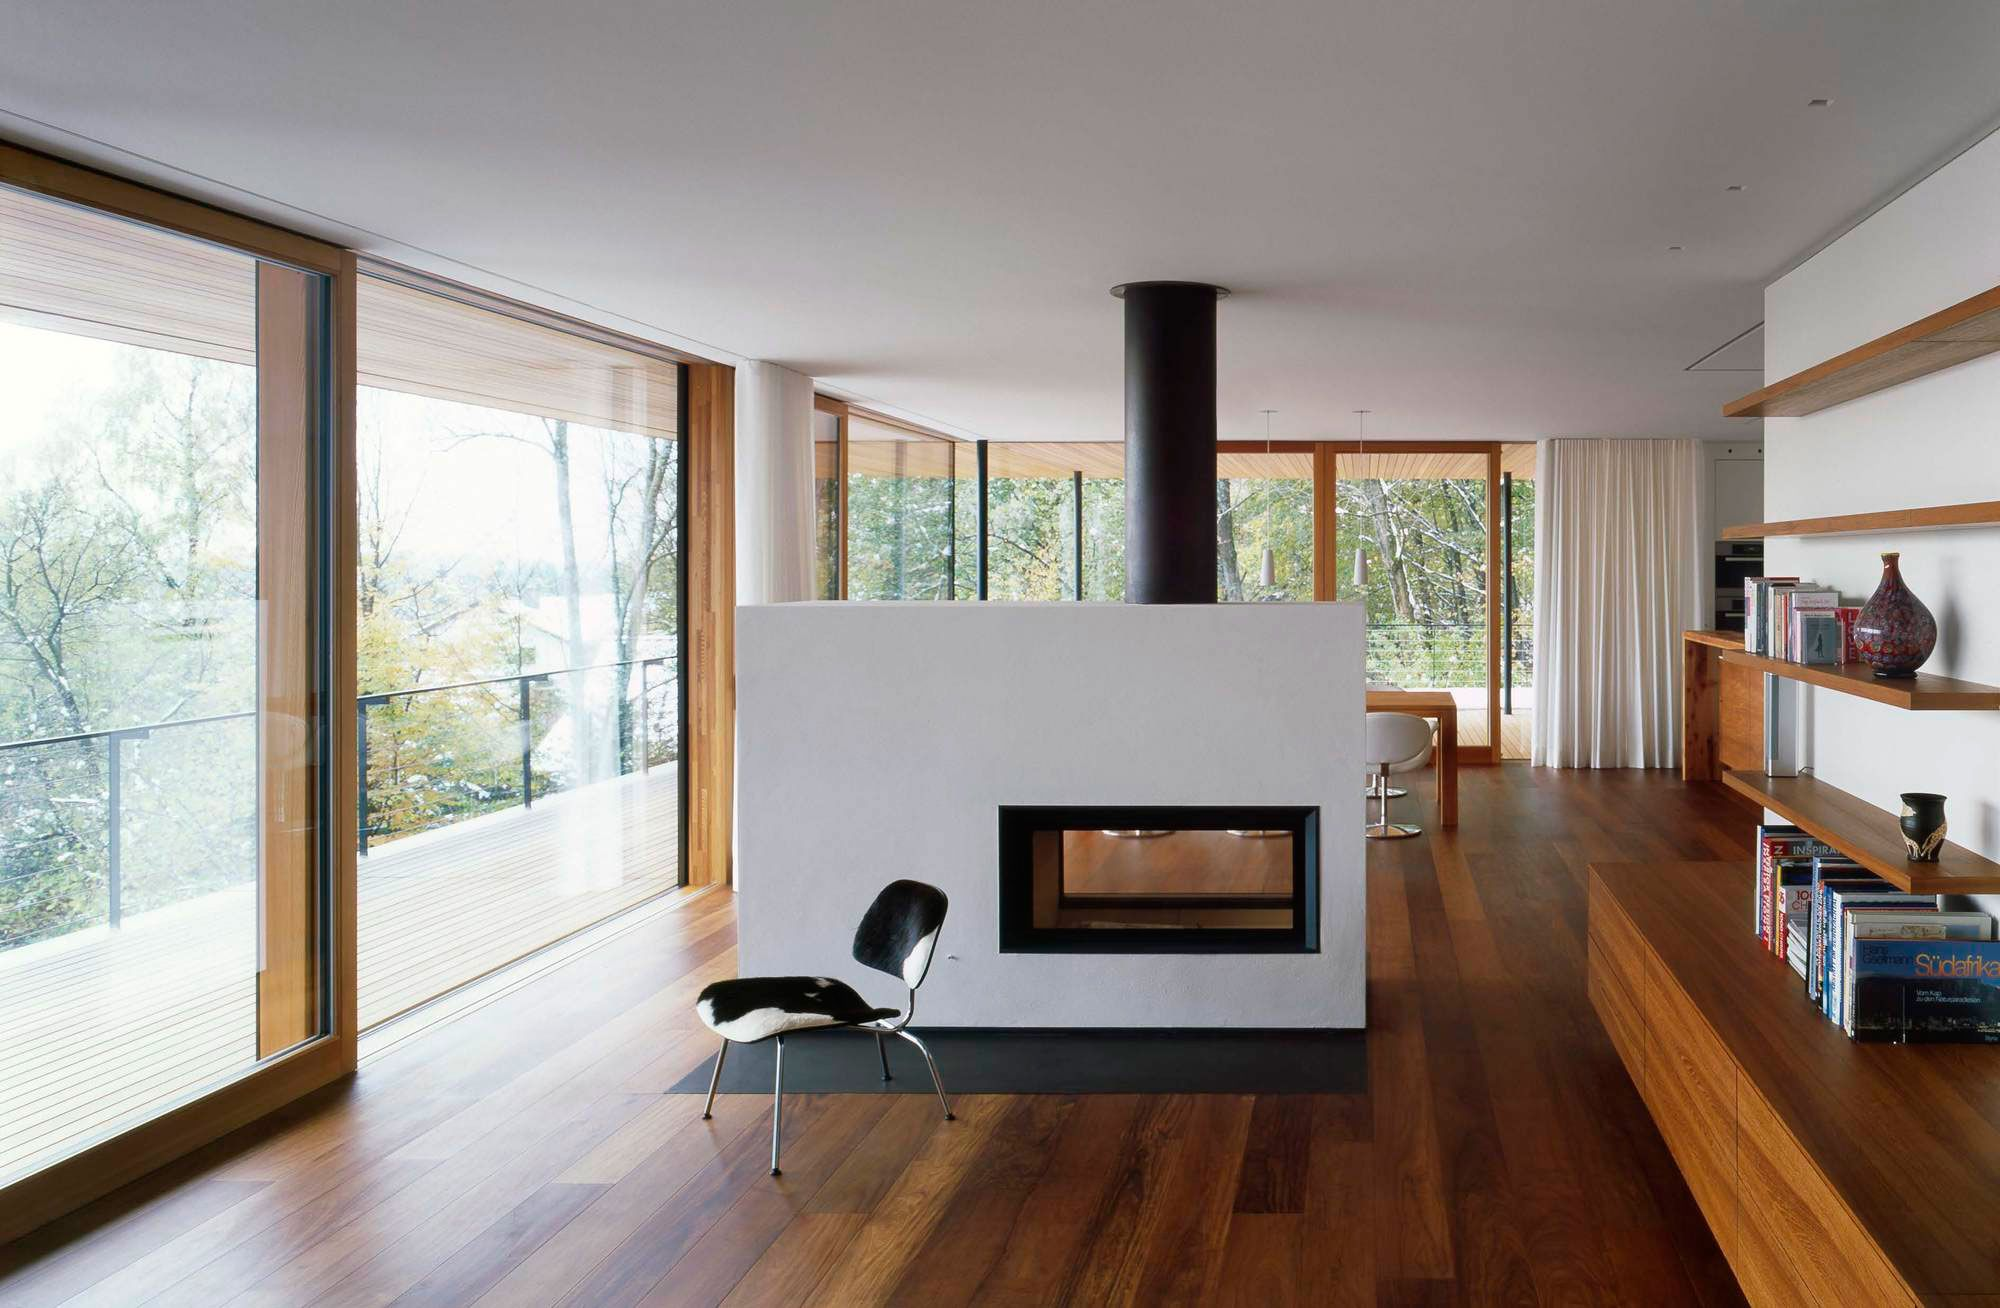 room - Living Room With Fireplace In Middle